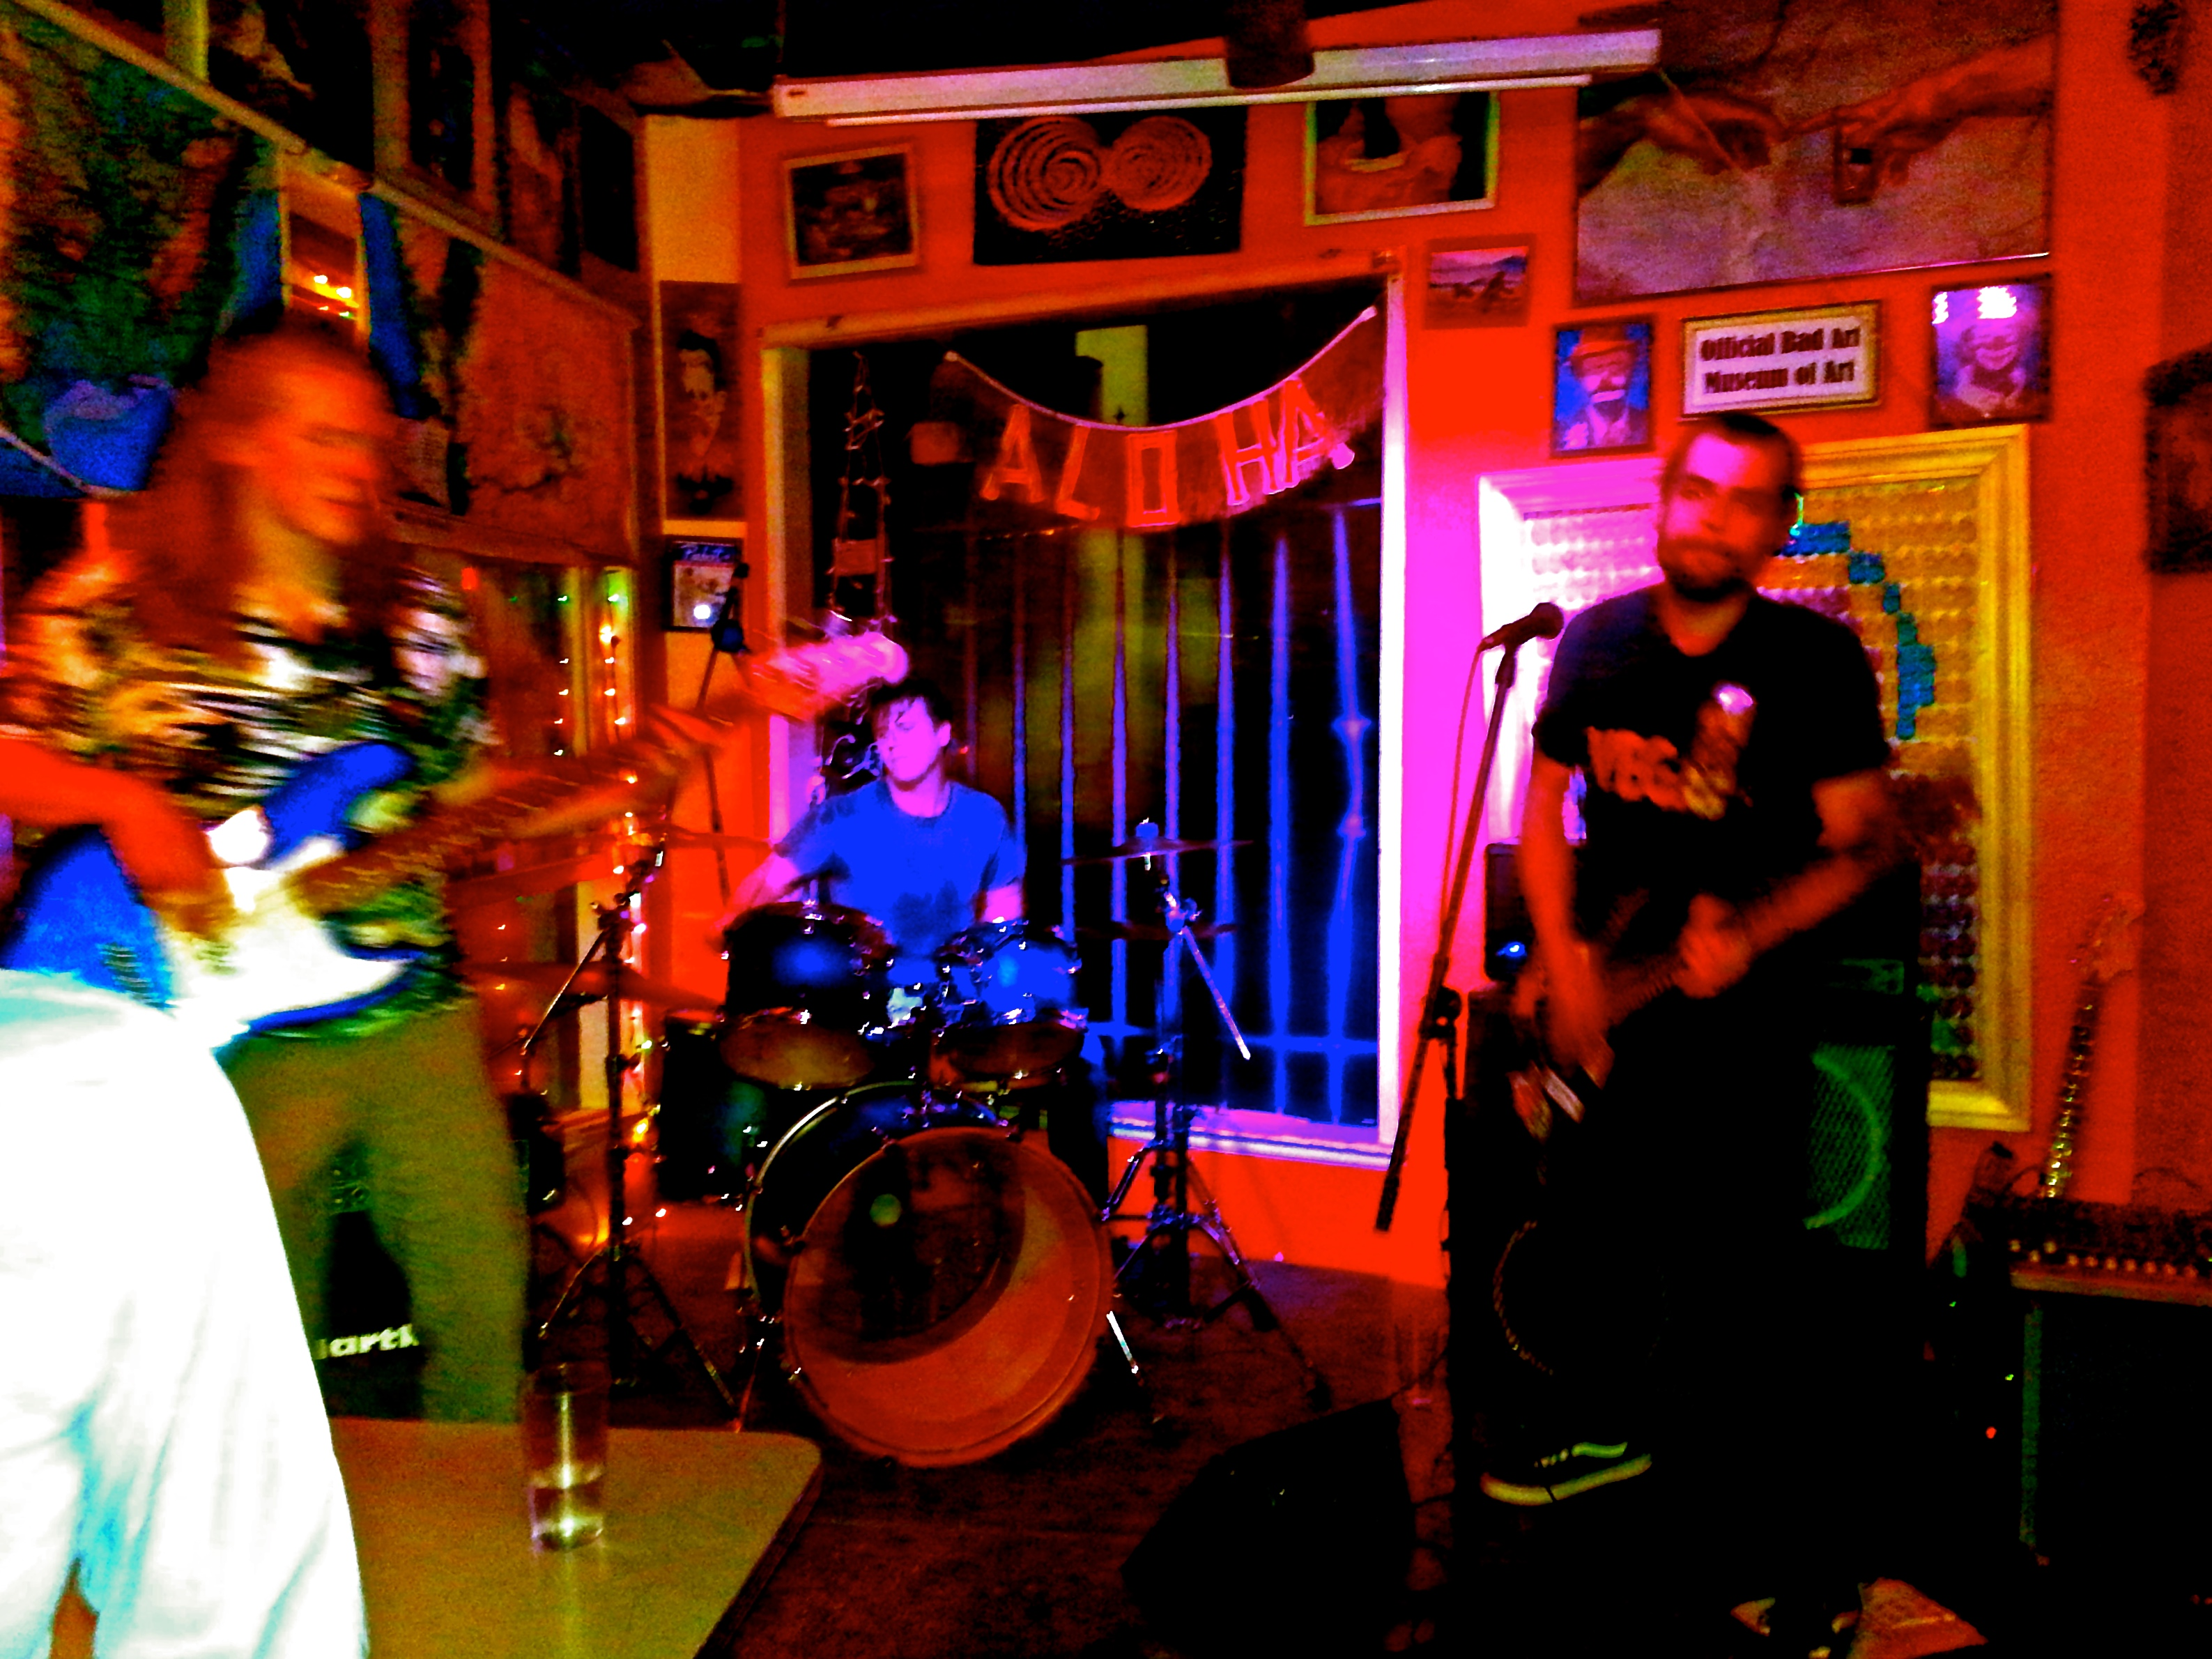 Your Band distorts gravity down at Cafe Racer